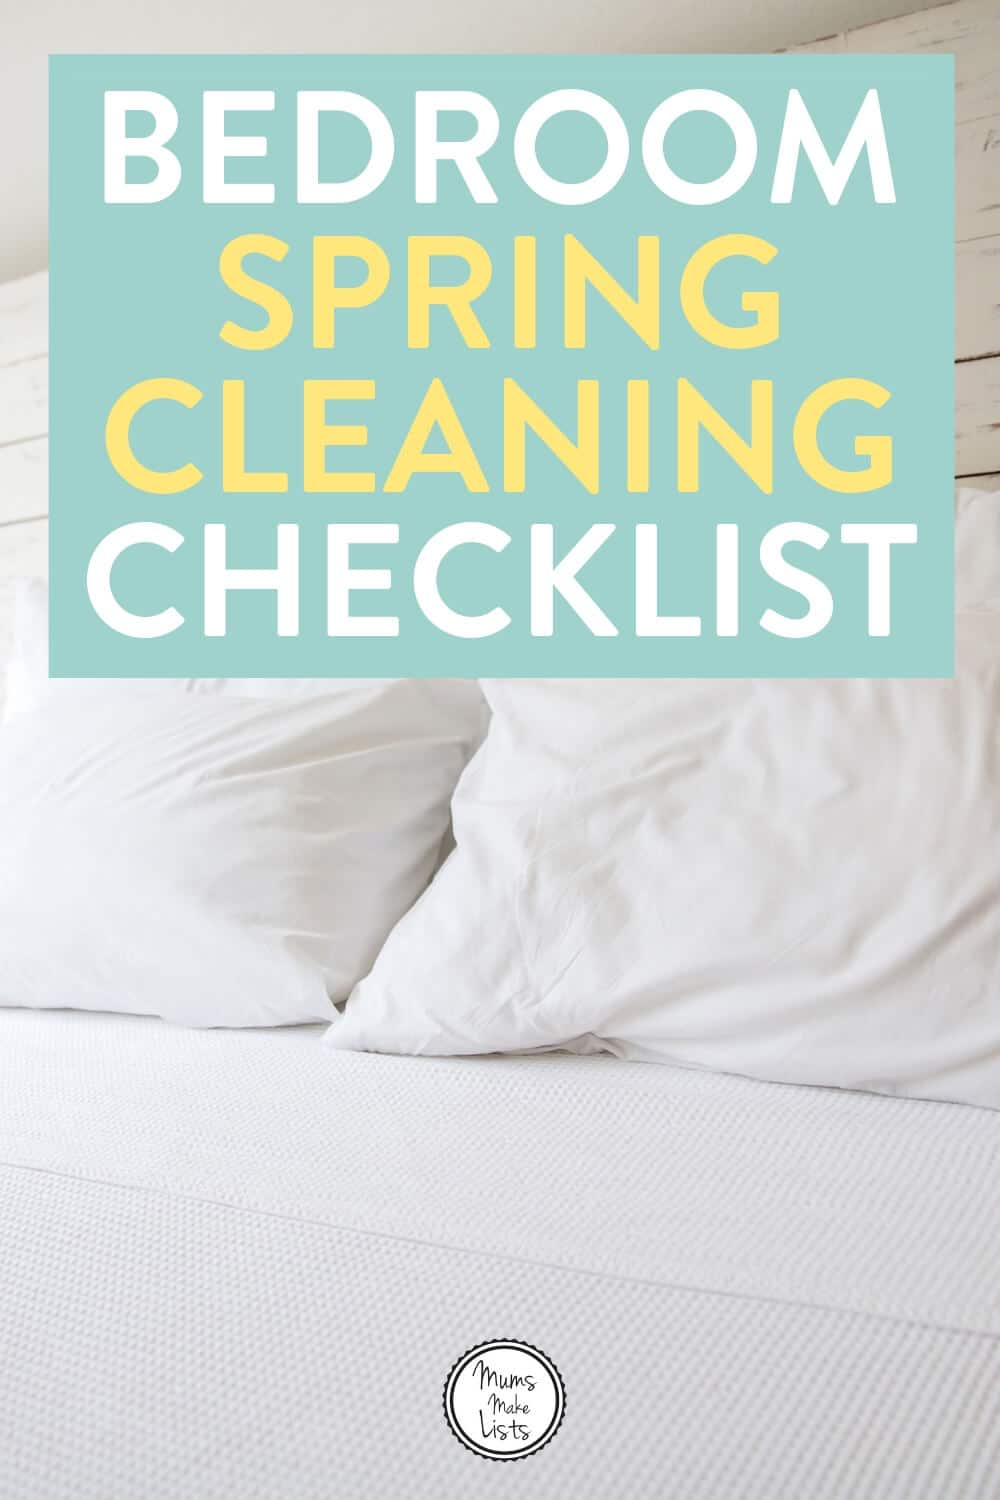 Bedroom spring cleaning checklist, bedroom spring cleaning, spring cleaning checklist, spring clean, spring cleaning